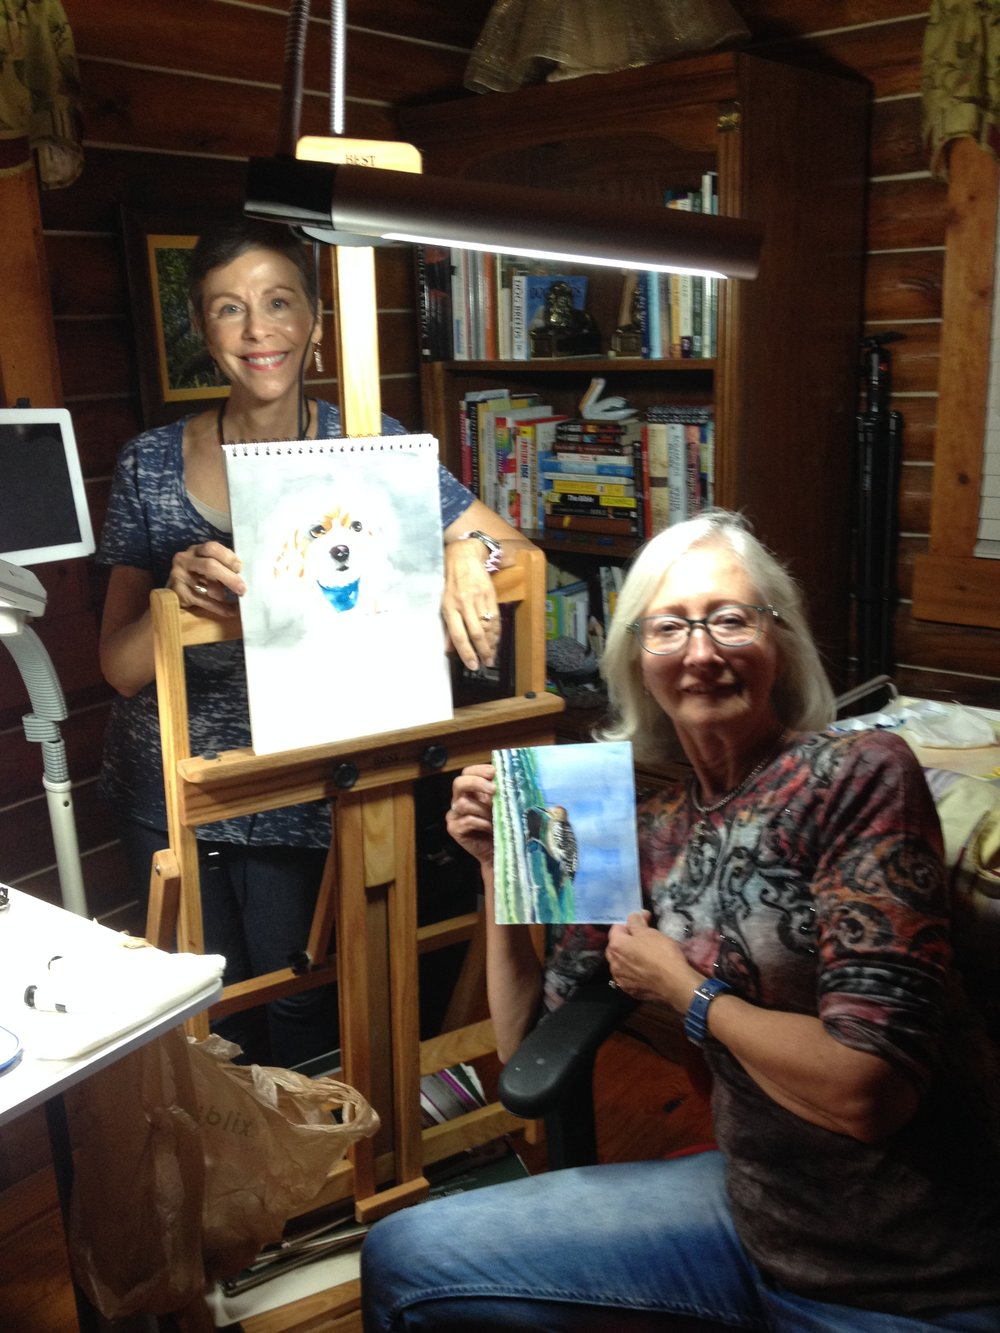 Lynn Ashford and Nancy Johnson at work in the studio